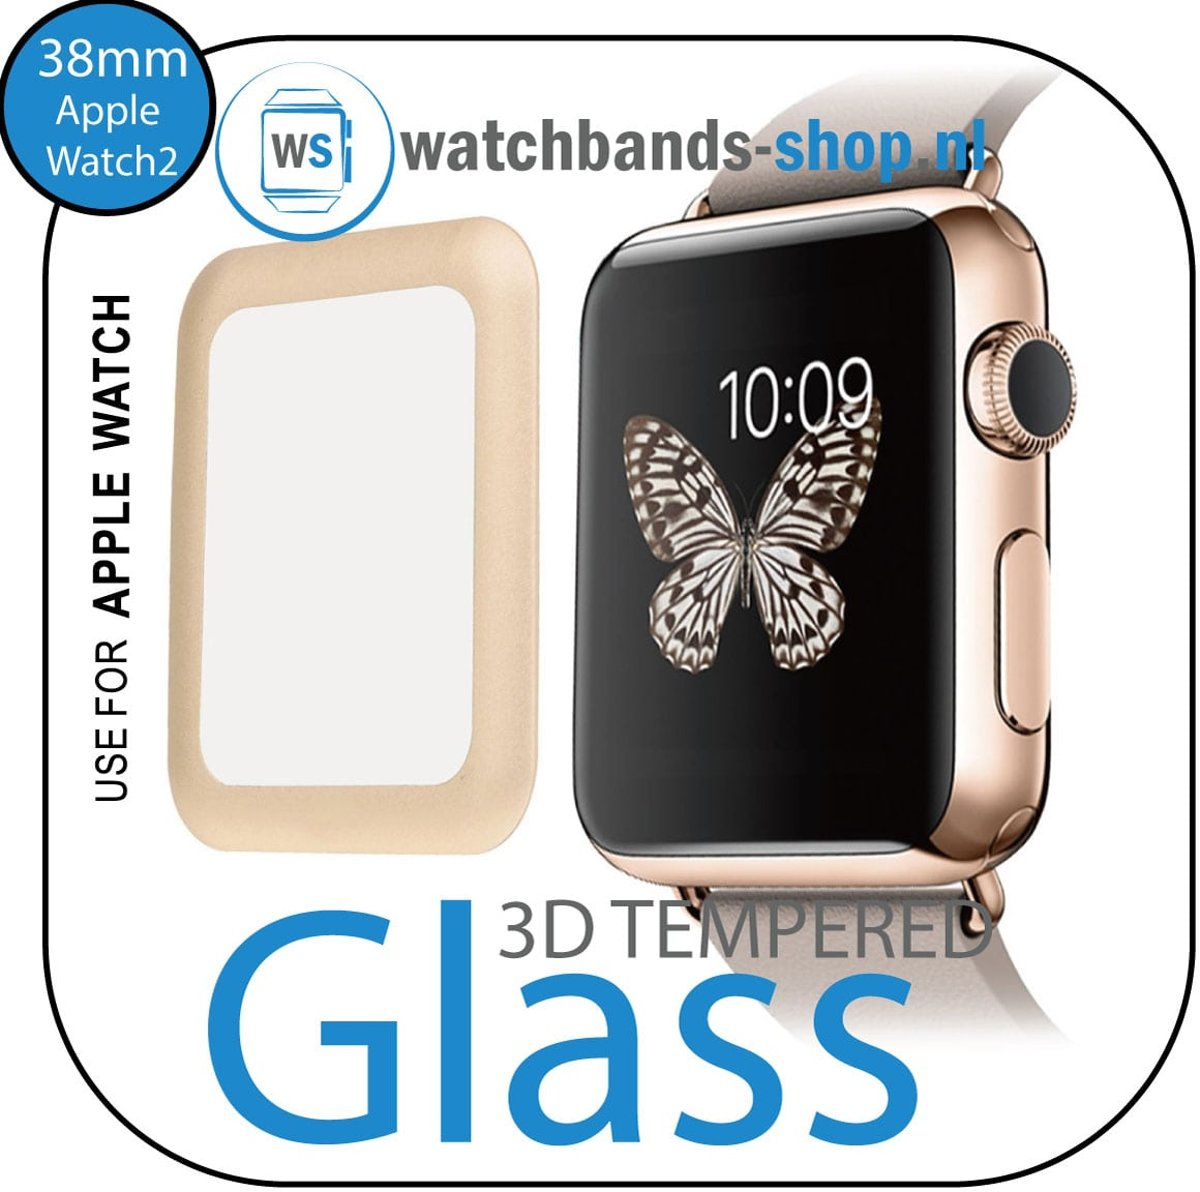 38mm full Cover 3D Tempered Glass Screen Protector For Apple watch / iWatch 2 gold edge | Watchbands-shop.nl kopen